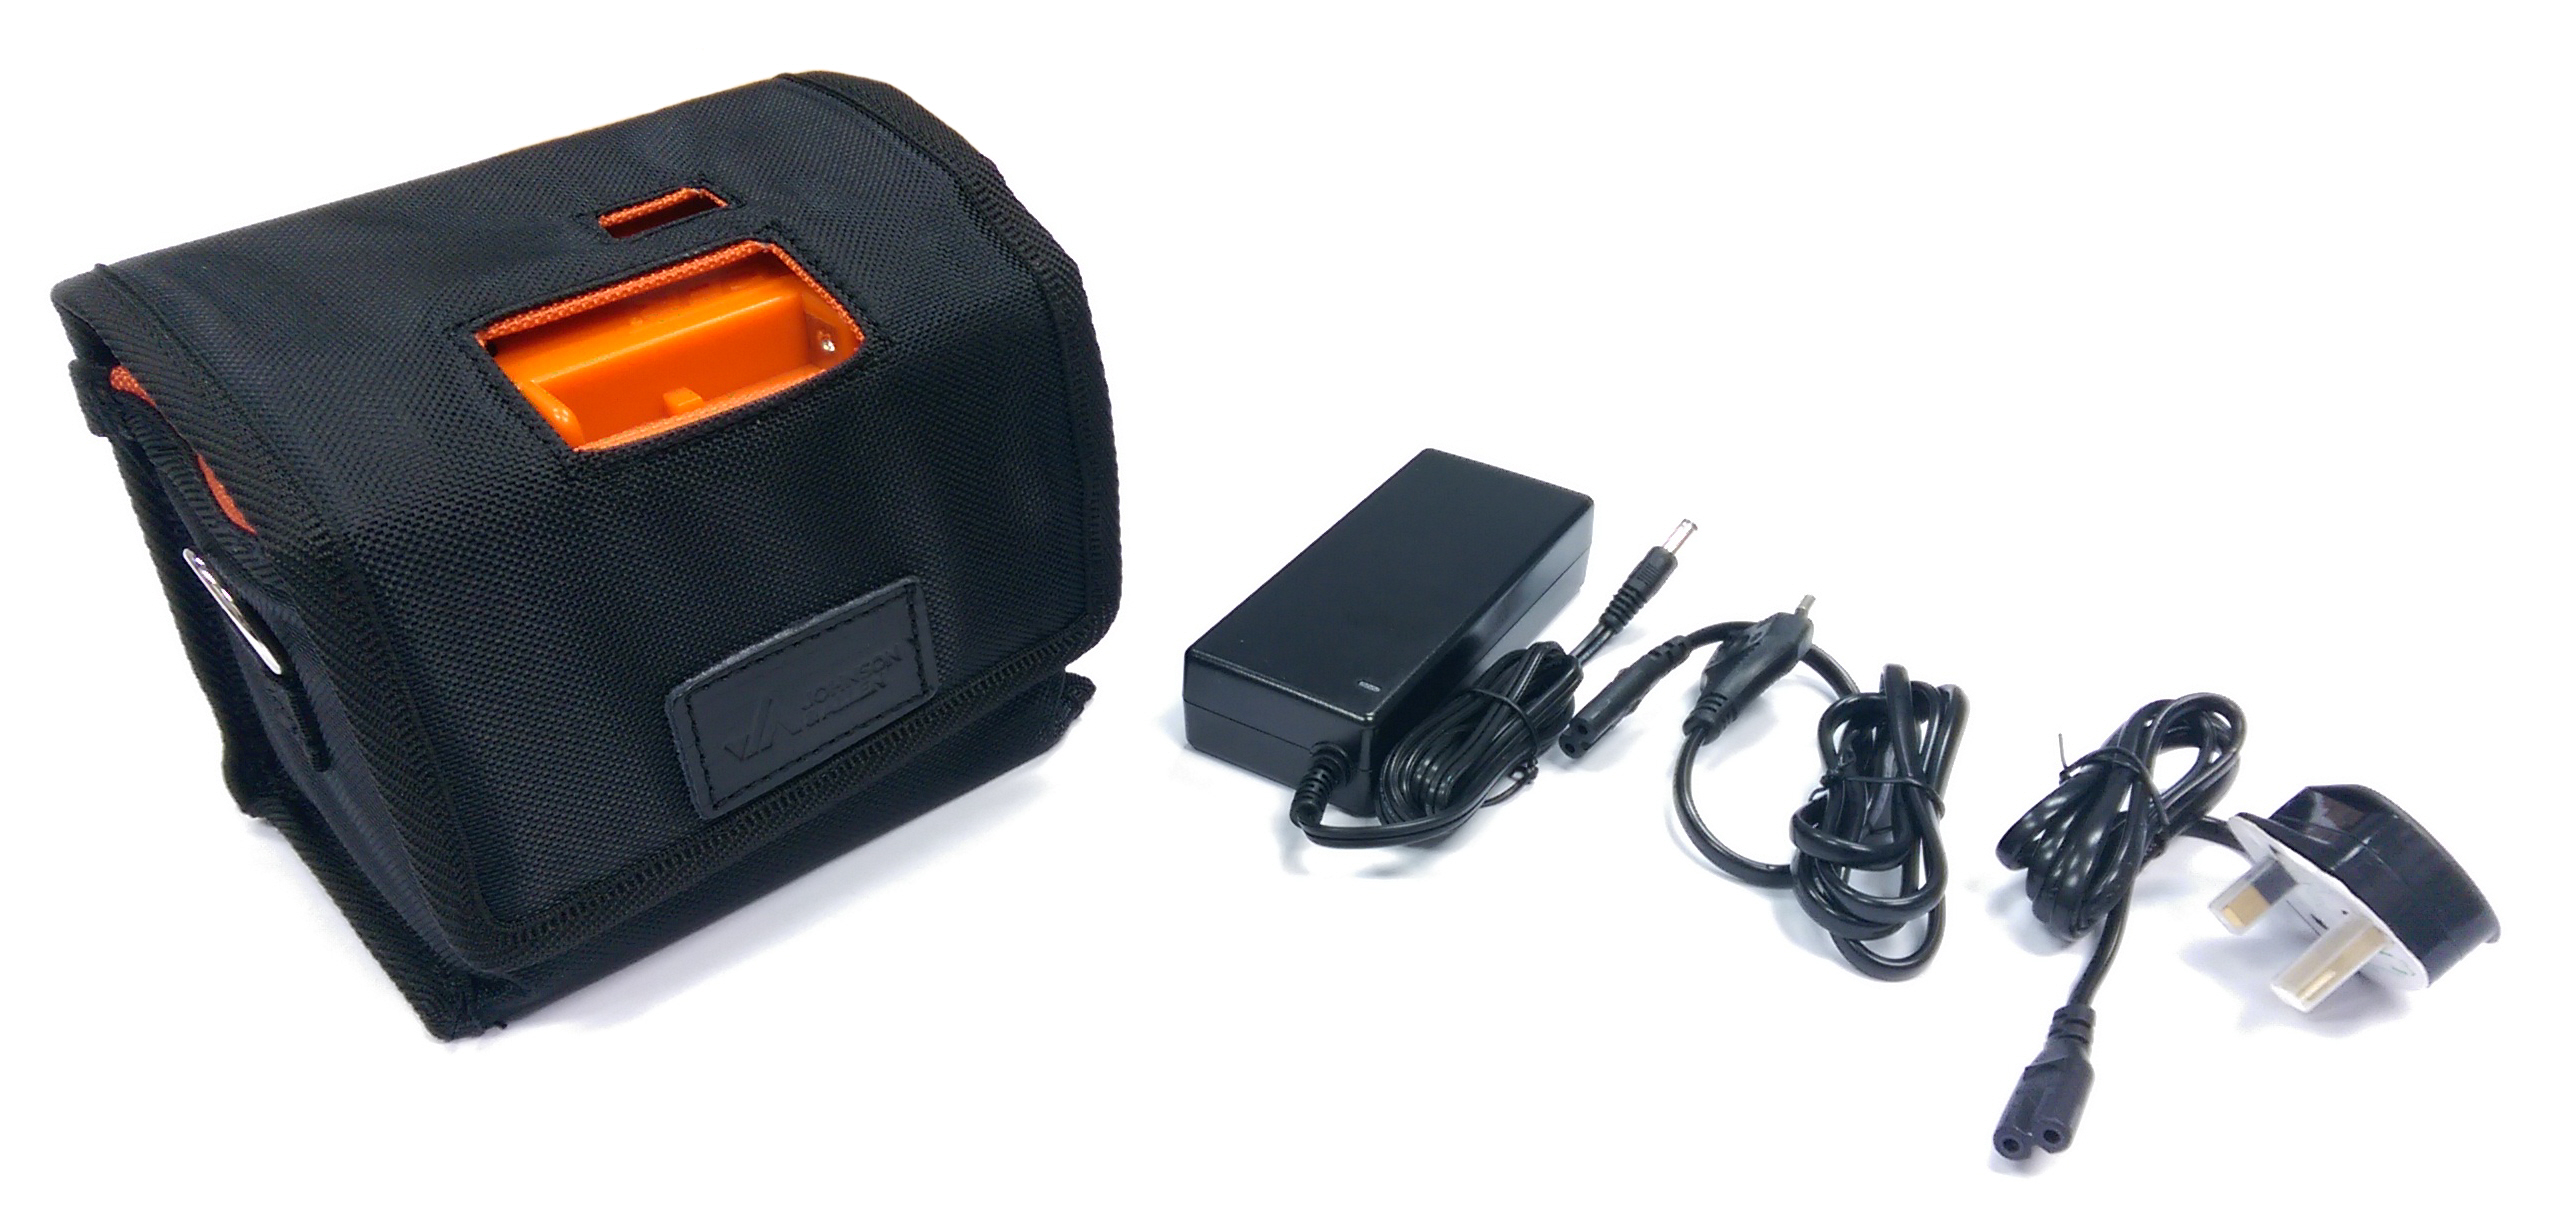 JAY-PAC 16Ah Battery (includes plugs shown)